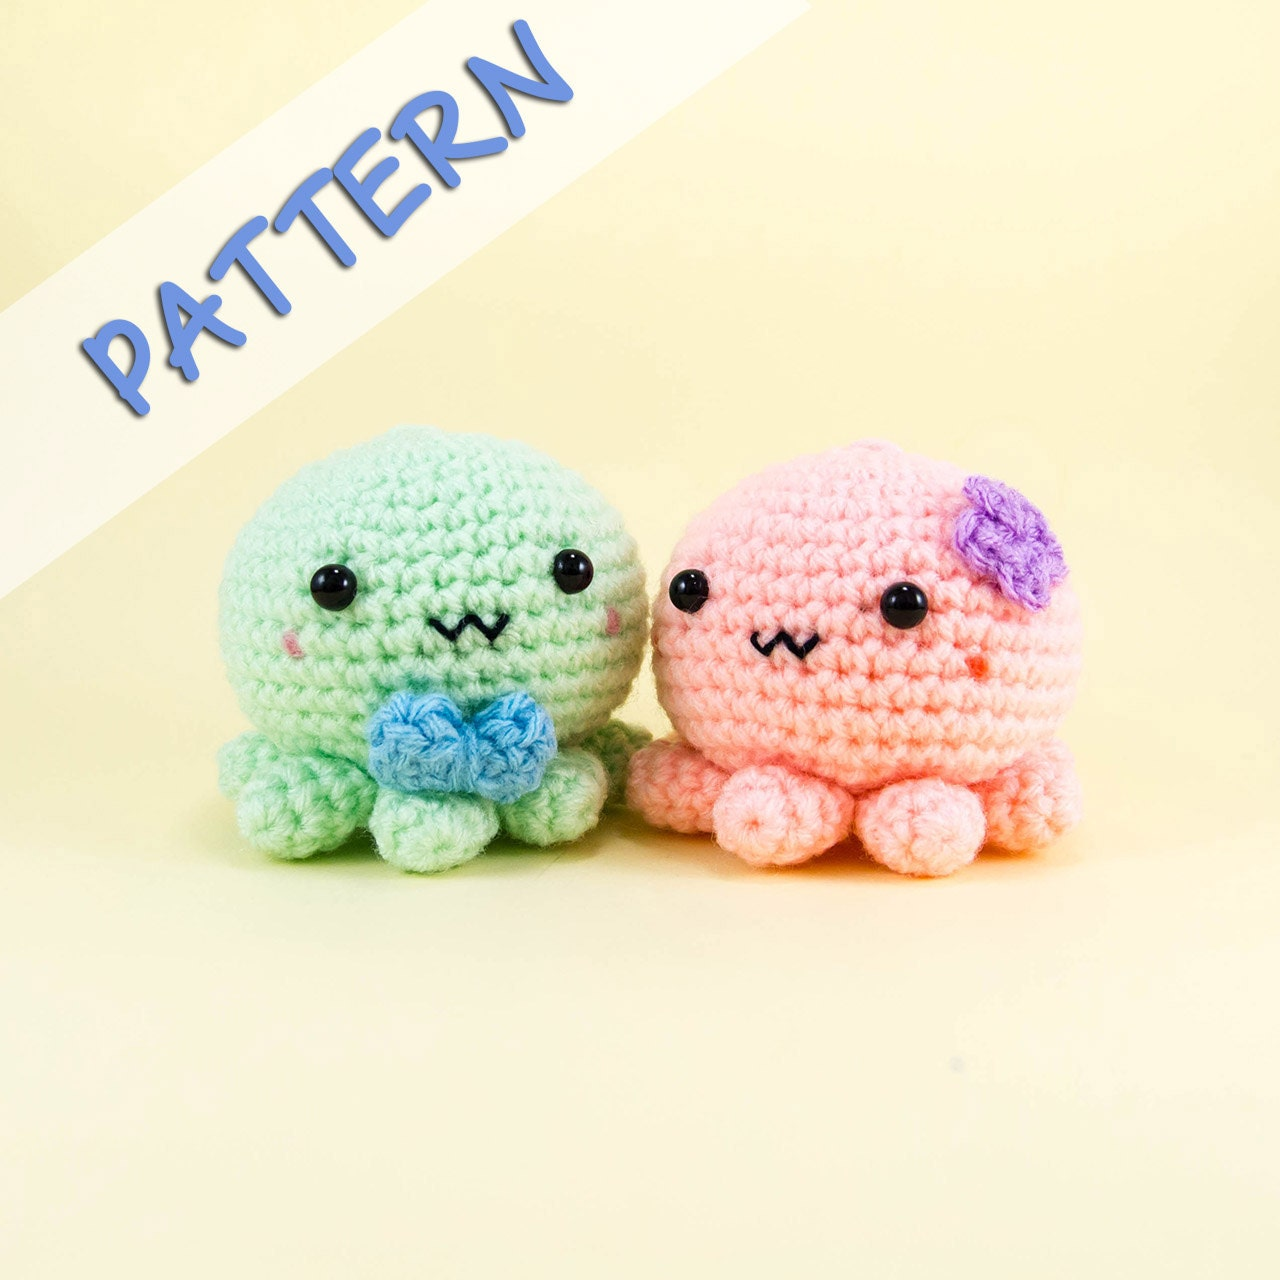 Crochet Wedding Gifts Patterns: Octopus Couple Amigurumi Pattern -- Crochet Toy Couple